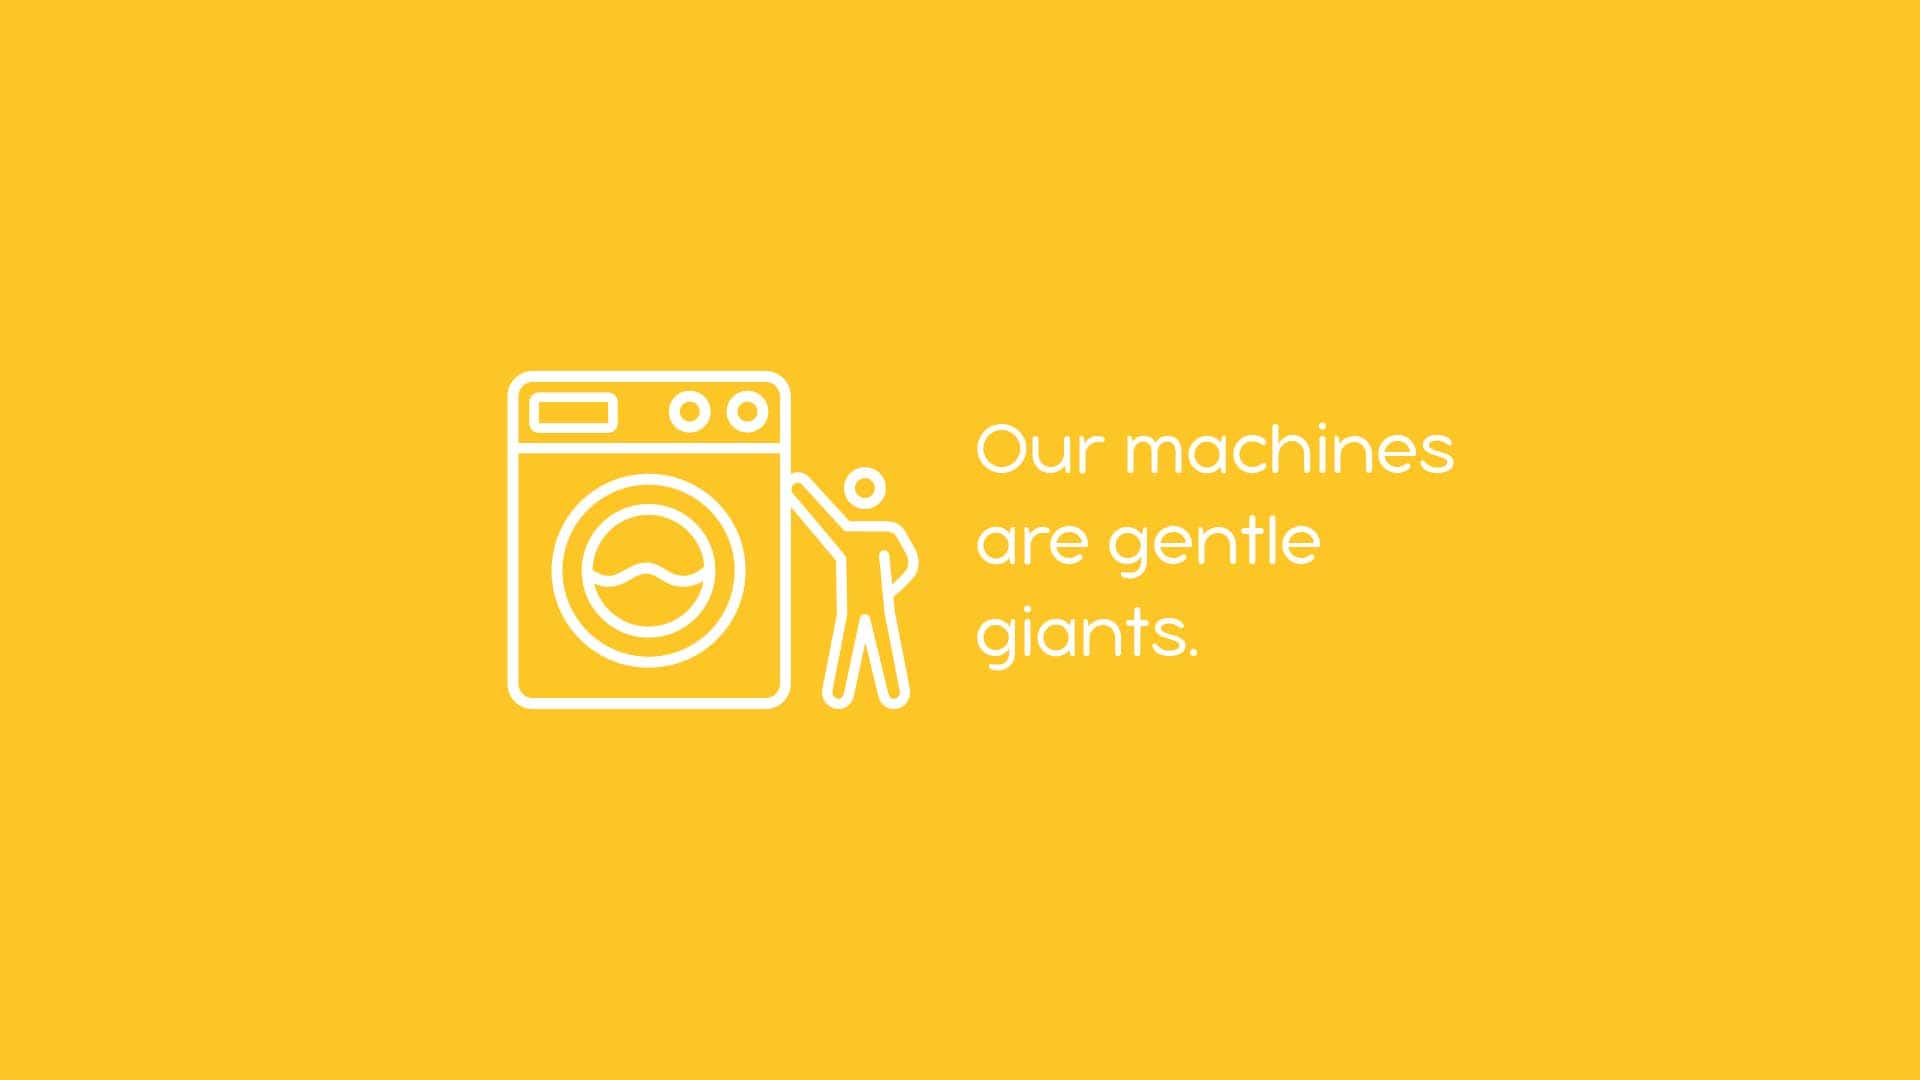 our-machines-gentle-min